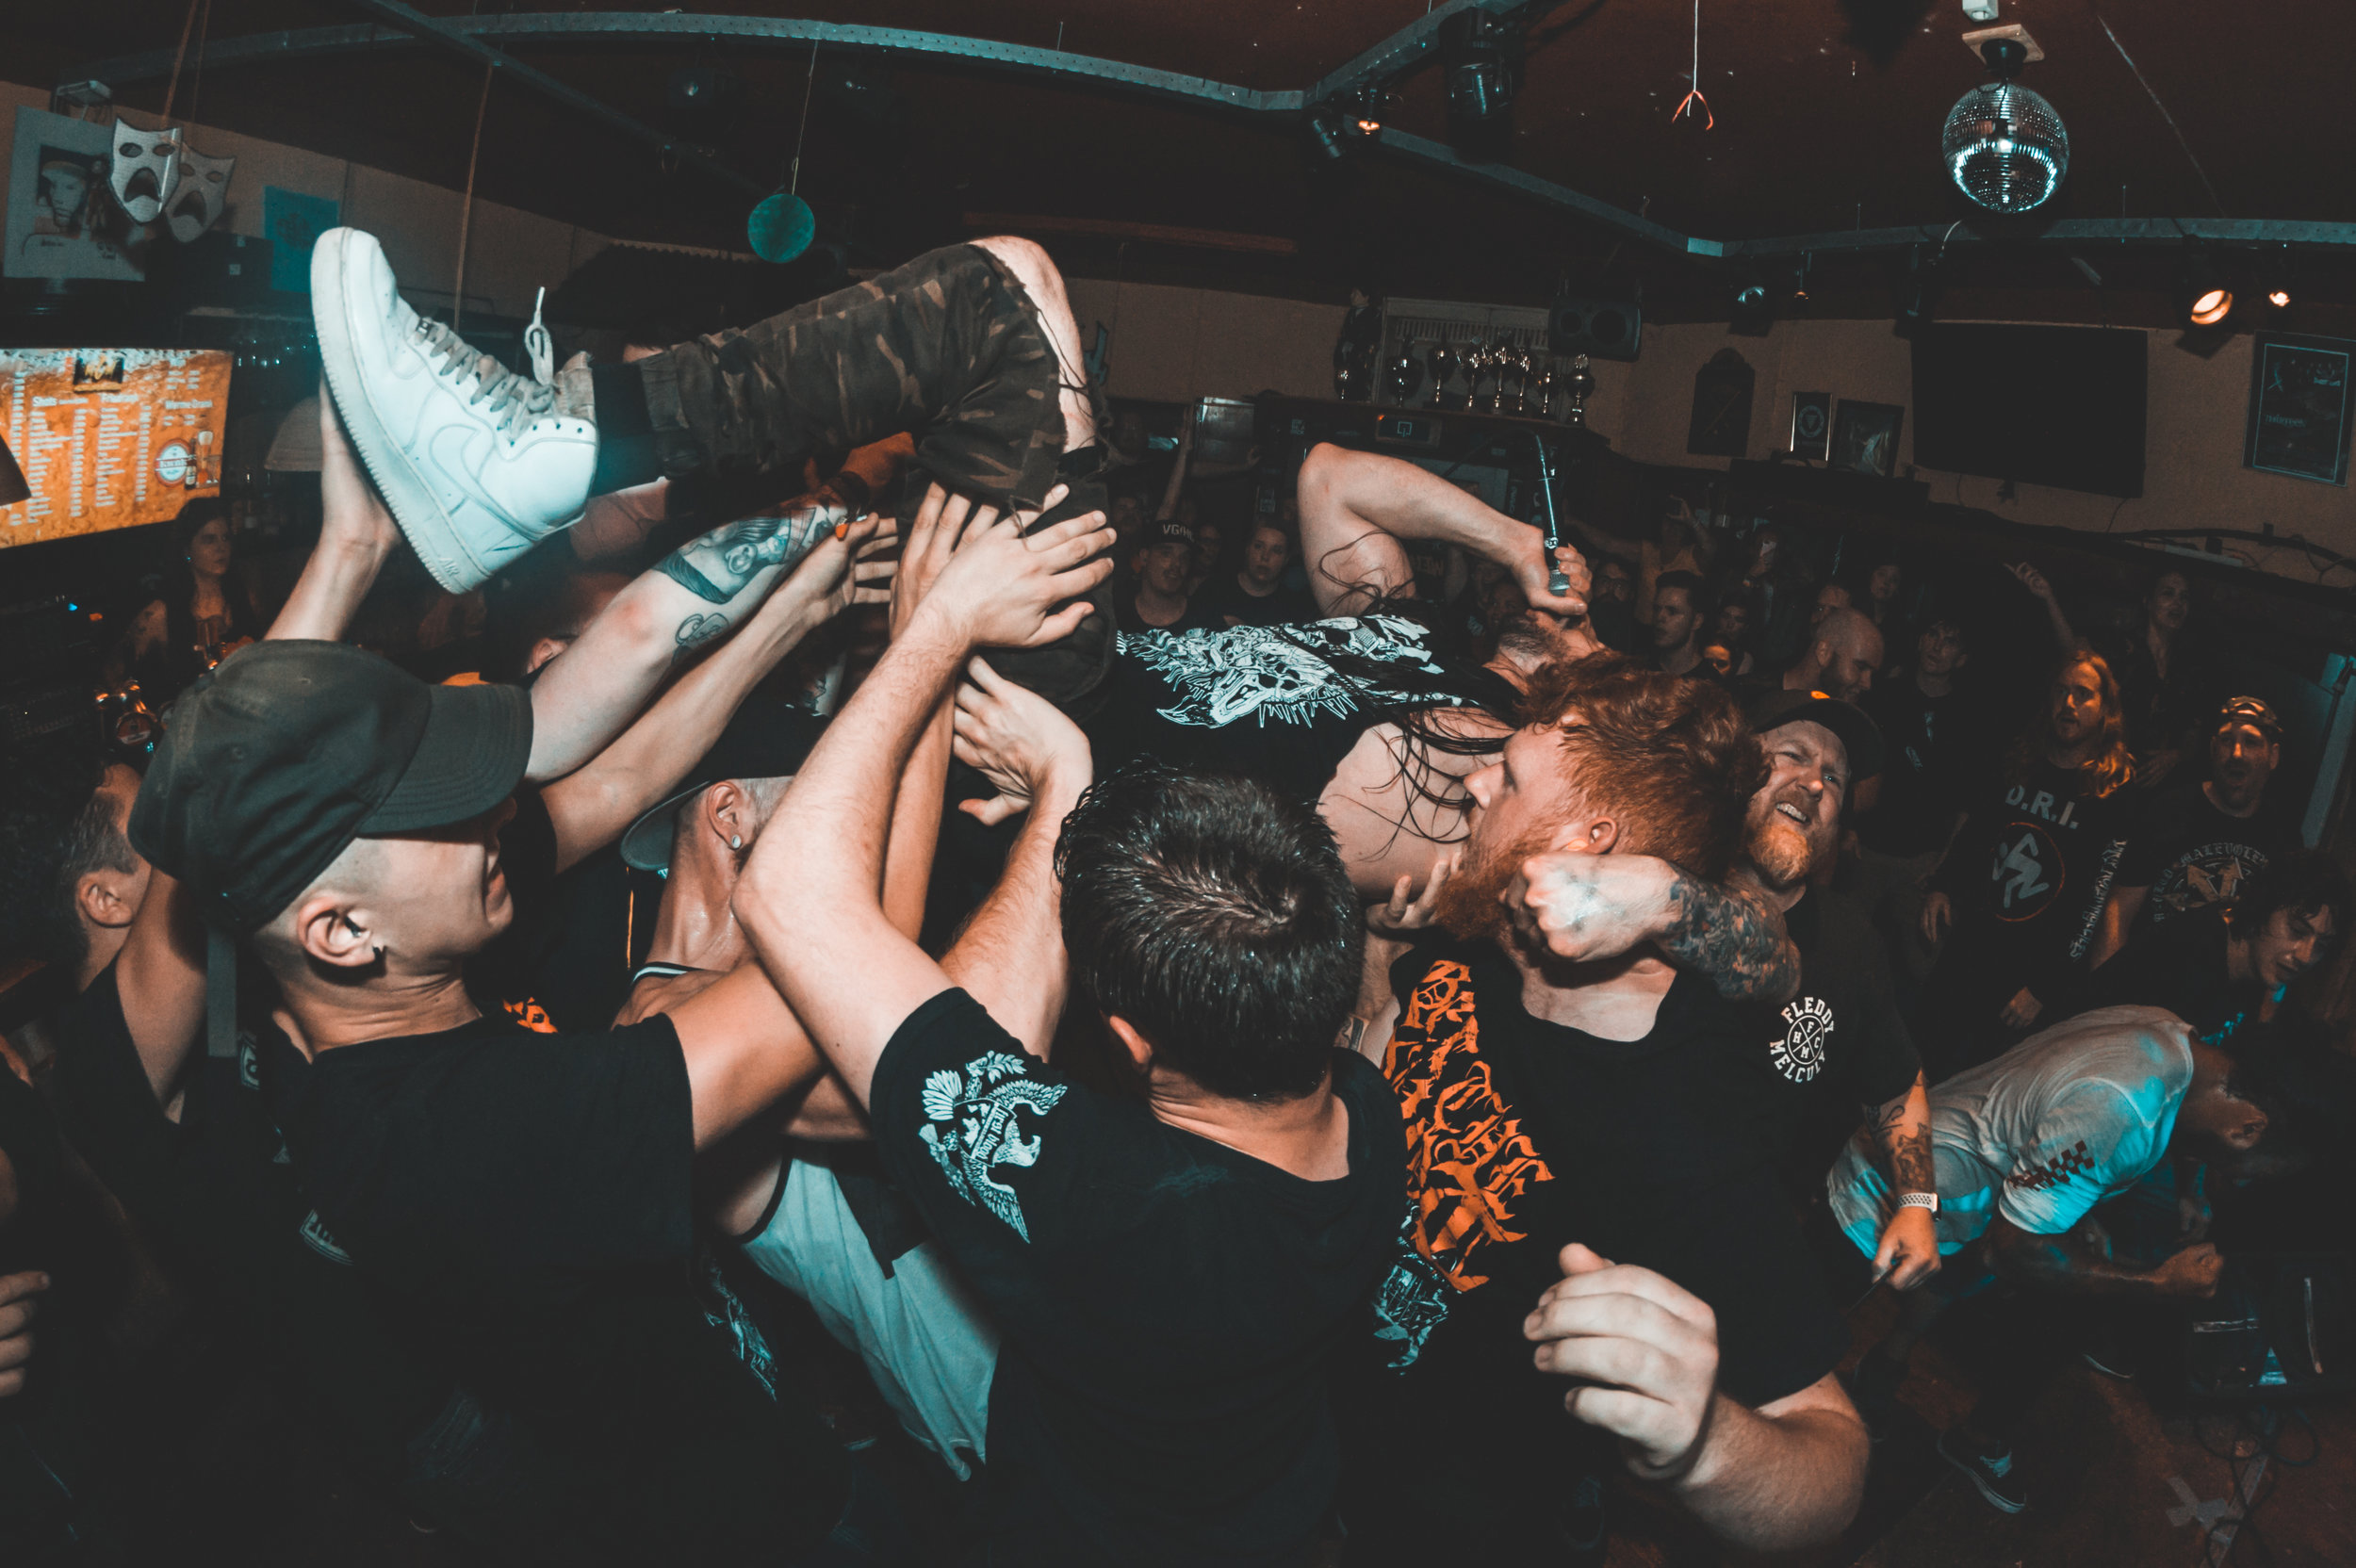 Get The Shot + Higher Power + More @ Cafe Meister - 12/08/2019